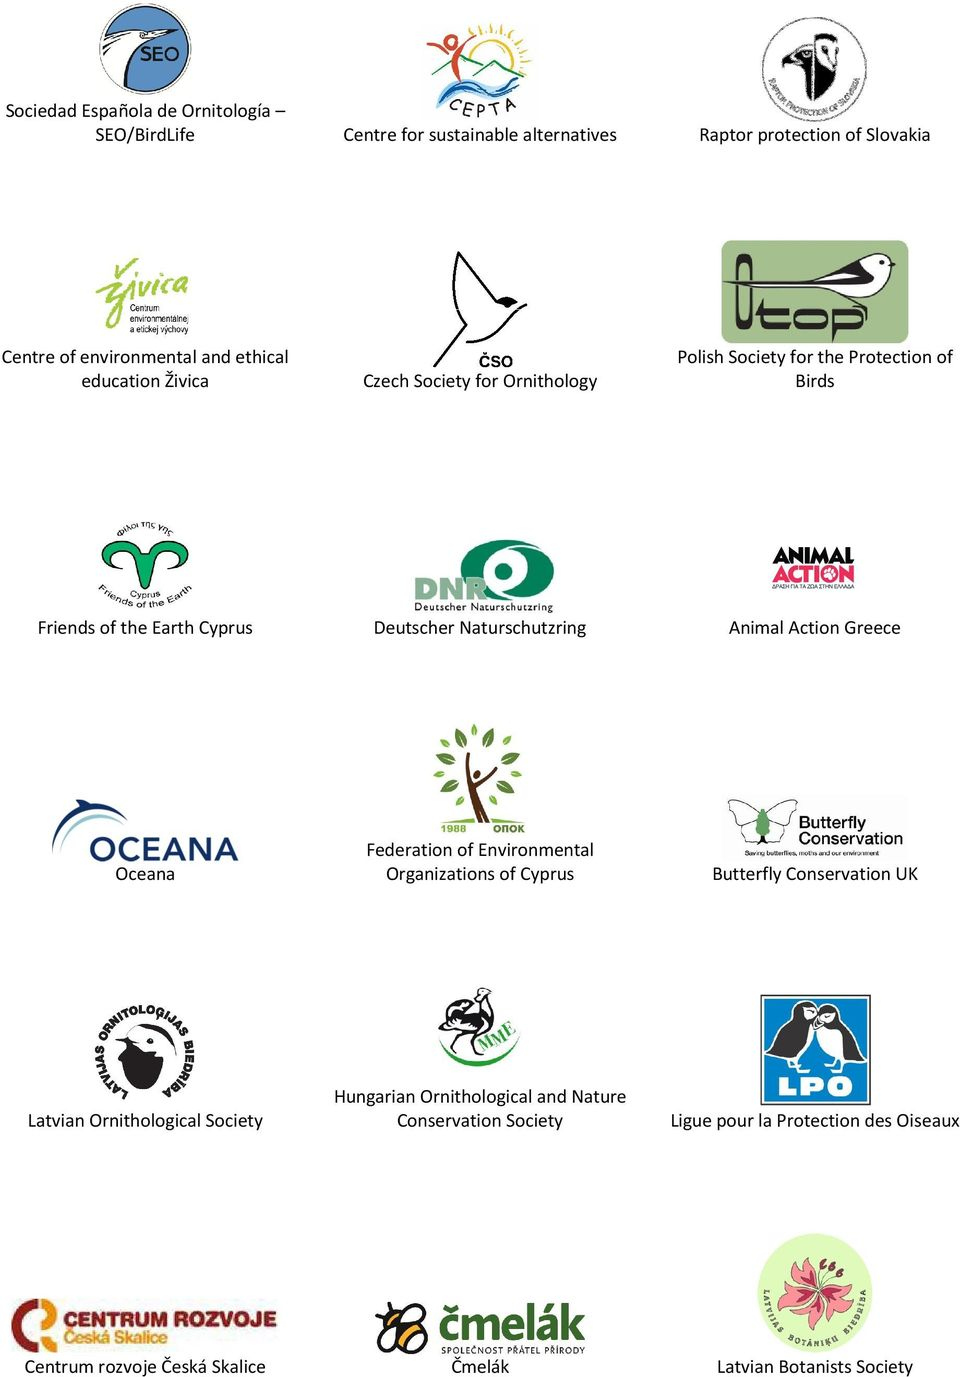 Naturschutzring Animal Action Greece Oceana Federation of Environmental Organizations of Cyprus Butterfly Conservation UK Latvian Ornithological